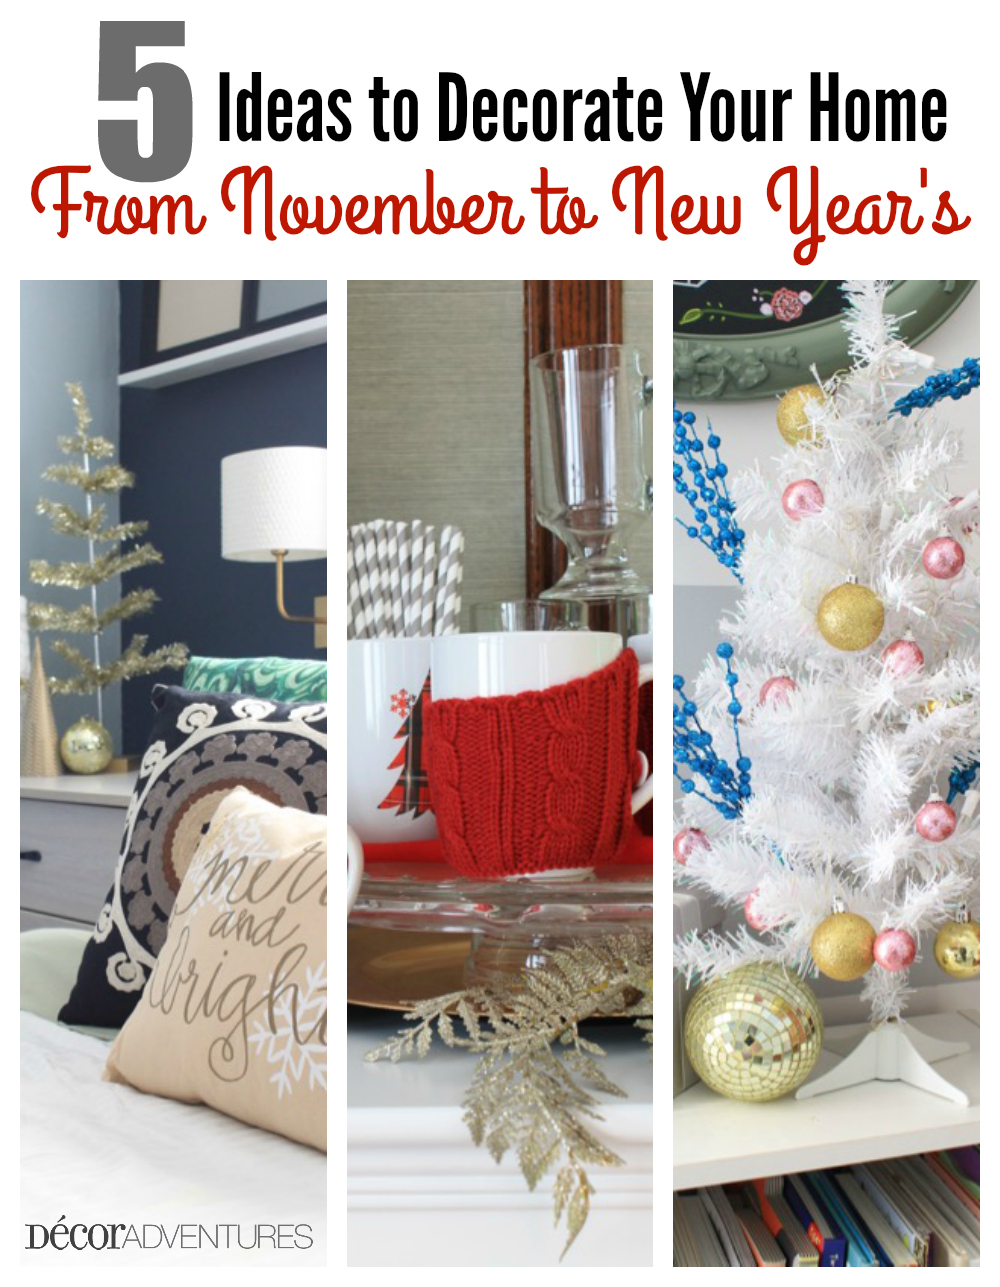 Five Ideas to Decorate Your Home for the Holidays » Decor Adventures